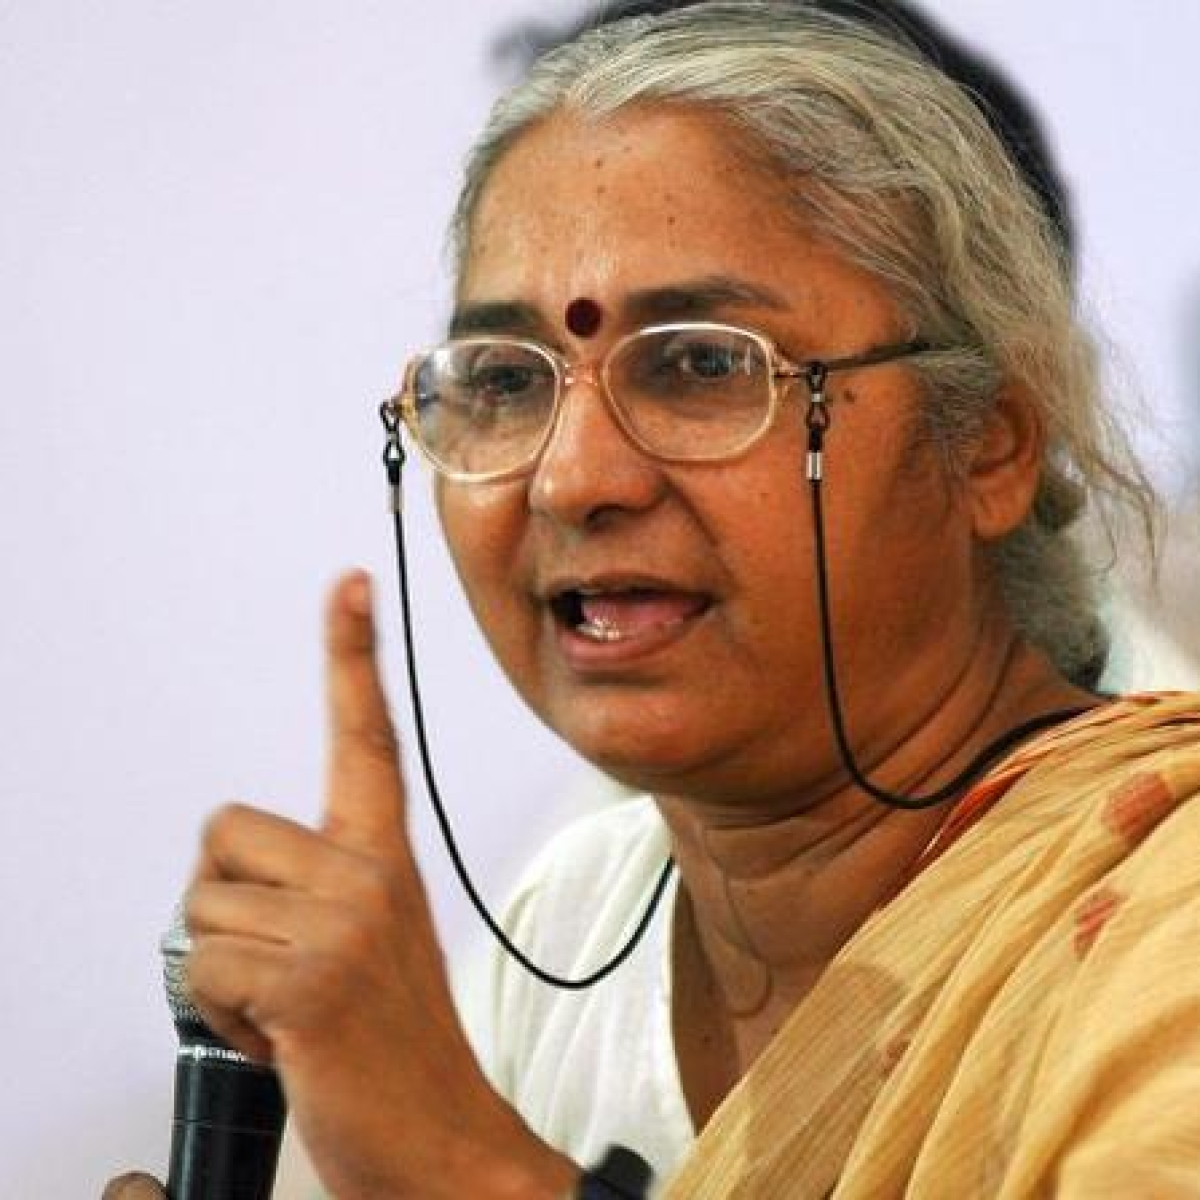 Medha Patkar claims Maha govt supplied food, water to Shramik train passengers, not Centre